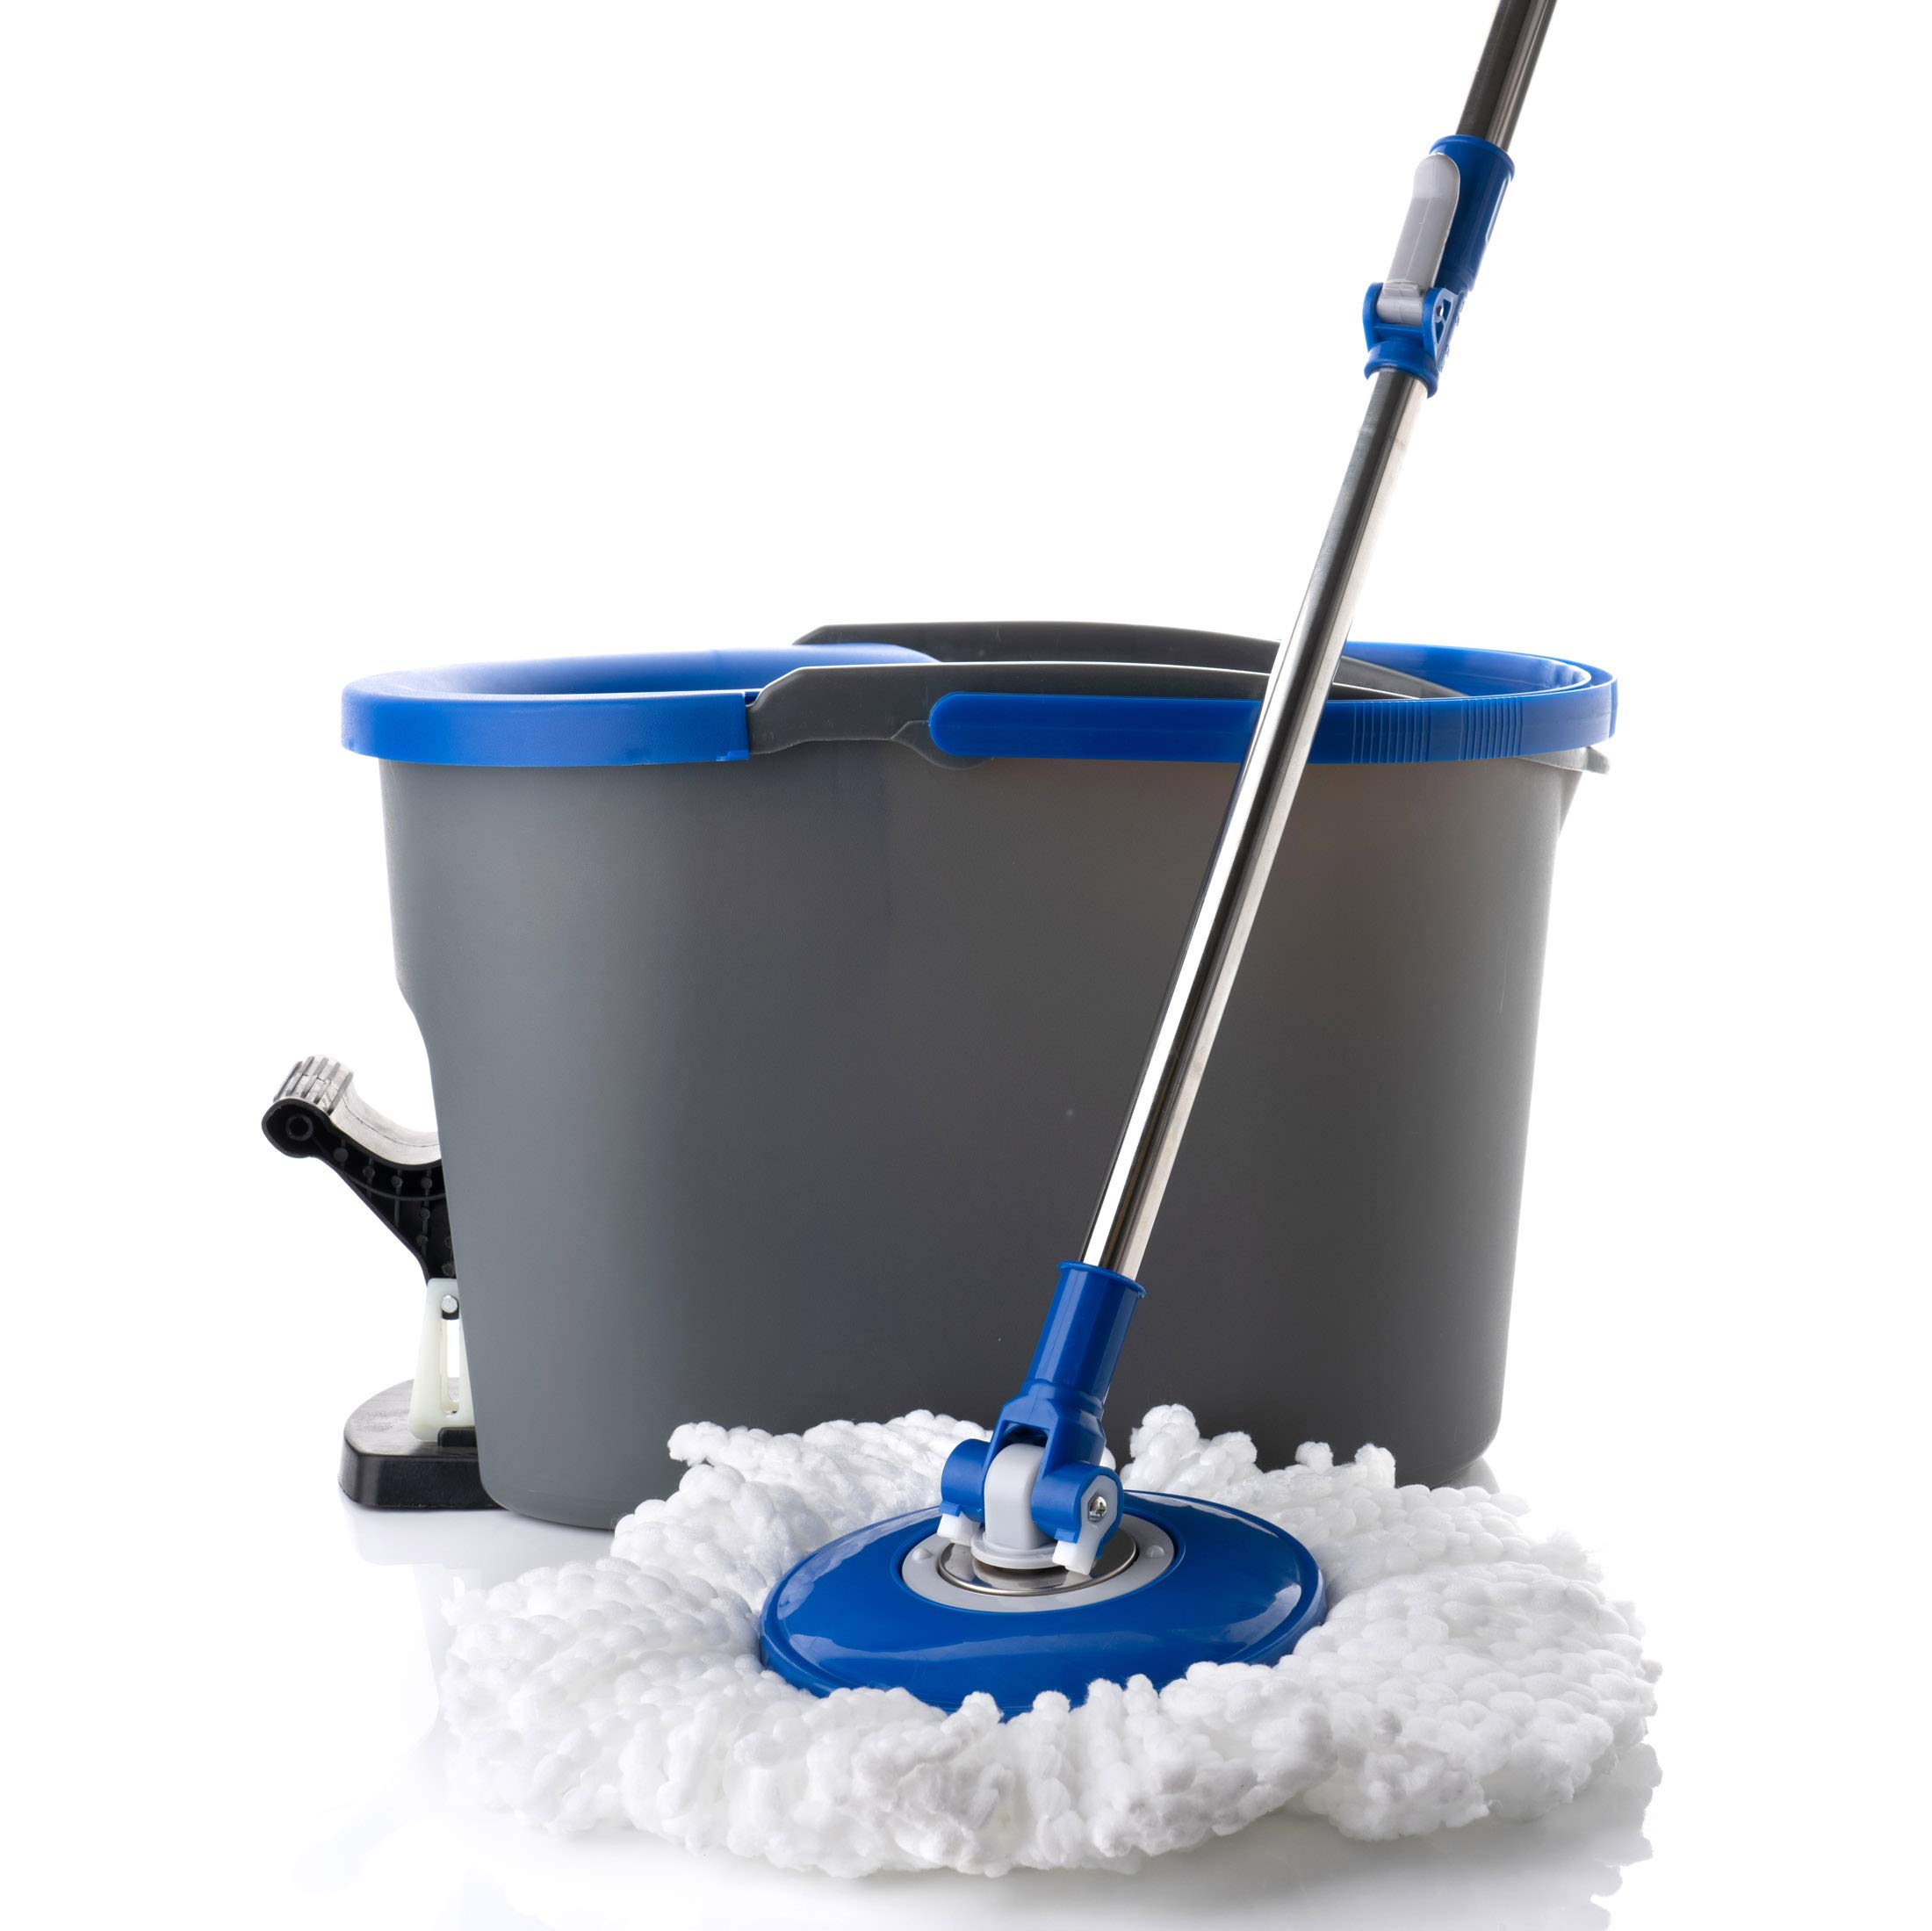 Simpli-Magic 79154 Spin Cleaning System with 3 Microfiber Mop Head Refills Included, Industrial by Simpli-Magic (Image #3)